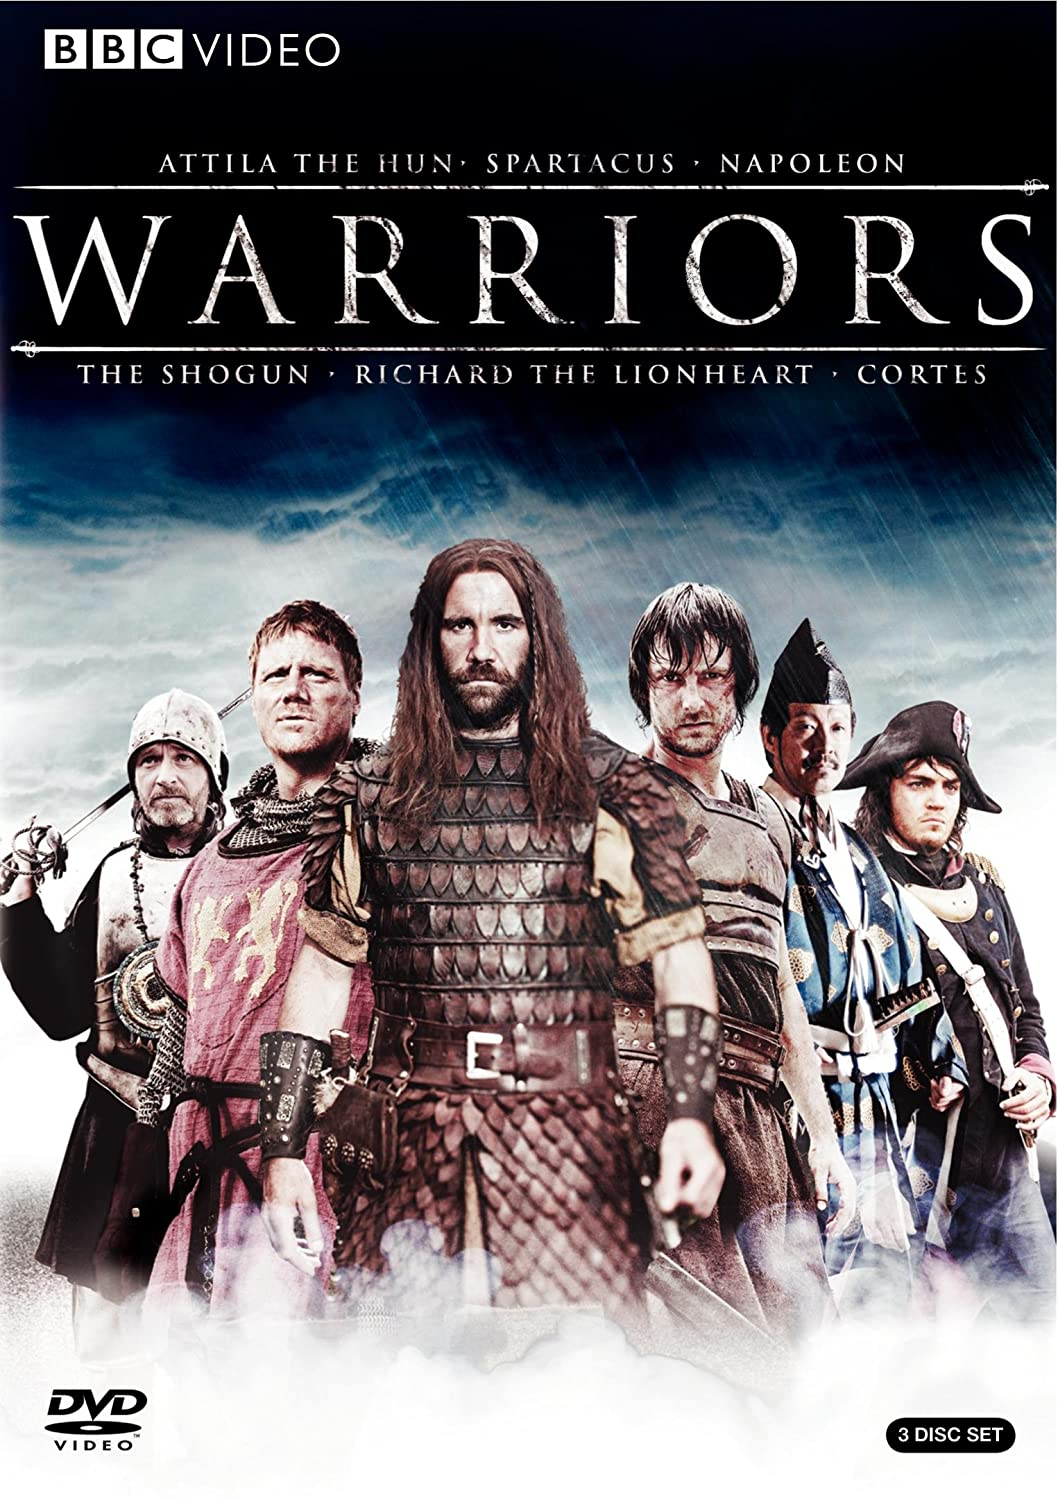 com warriors anthony flanagan rory mccann steve com warriors anthony flanagan rory mccann steve waddington brian mccardie james saito kenneth cranham tom burke artist not provided movies